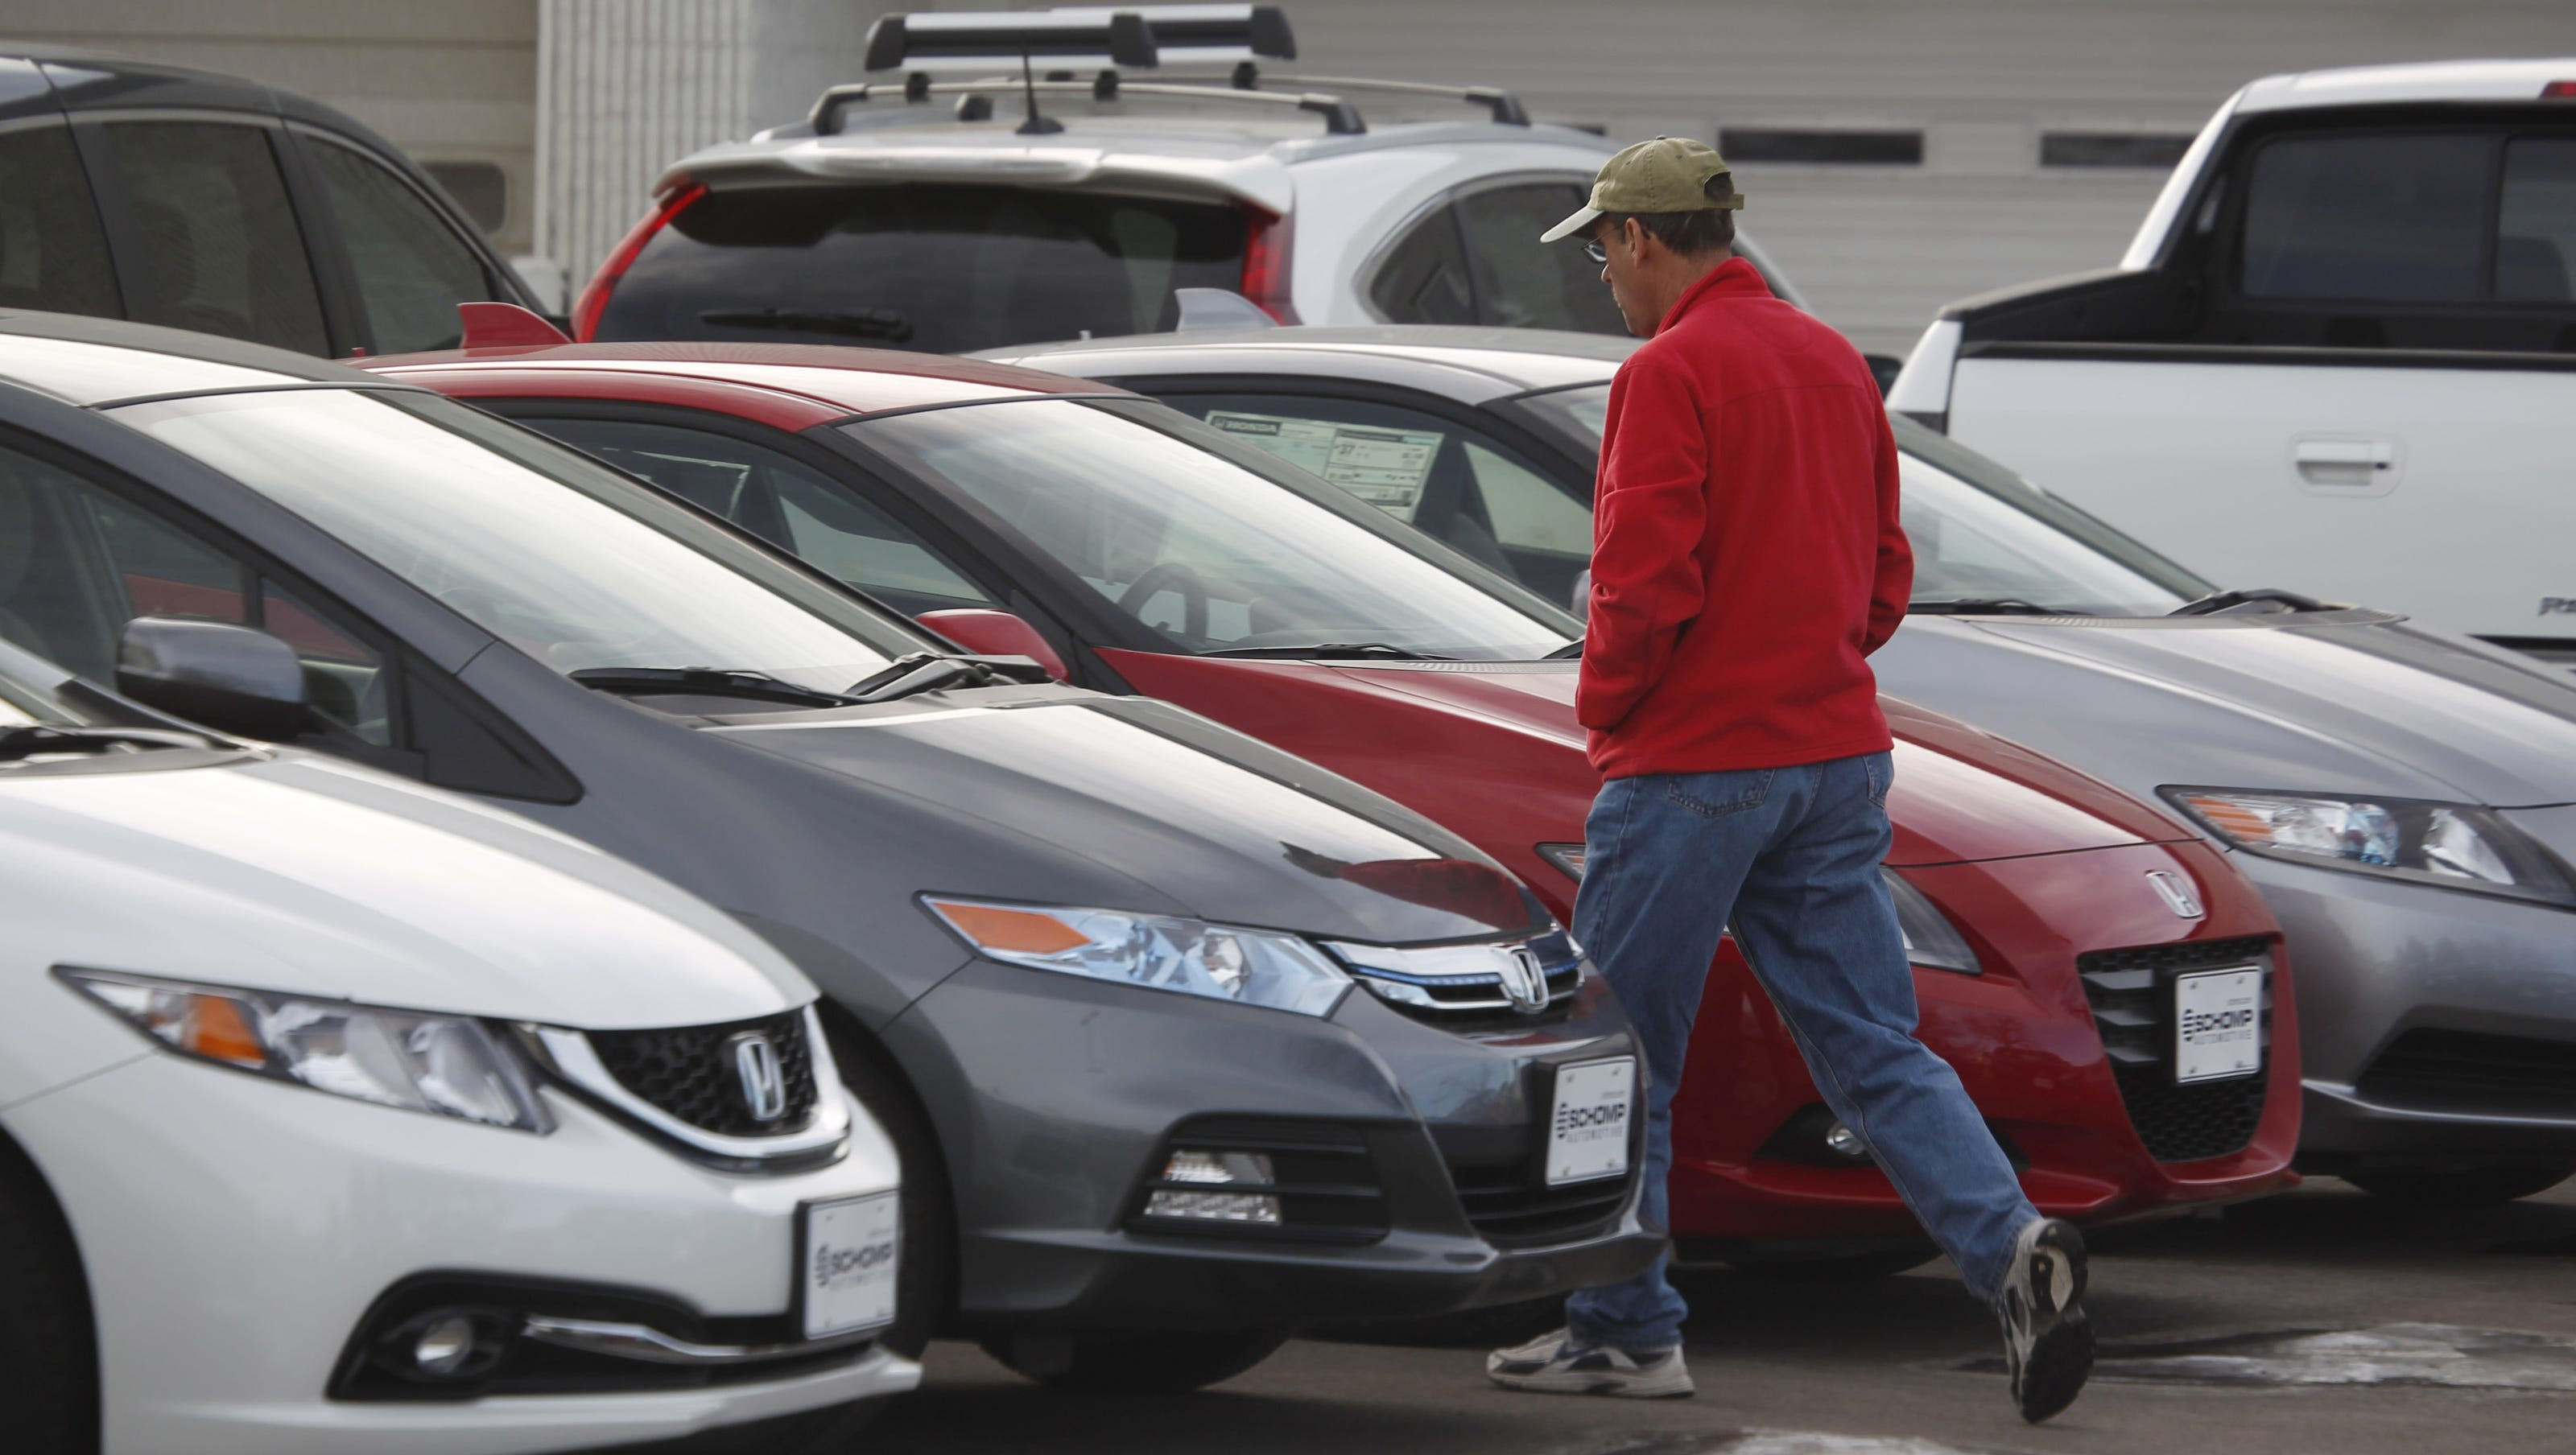 confident consumer: don't take car until loan is final